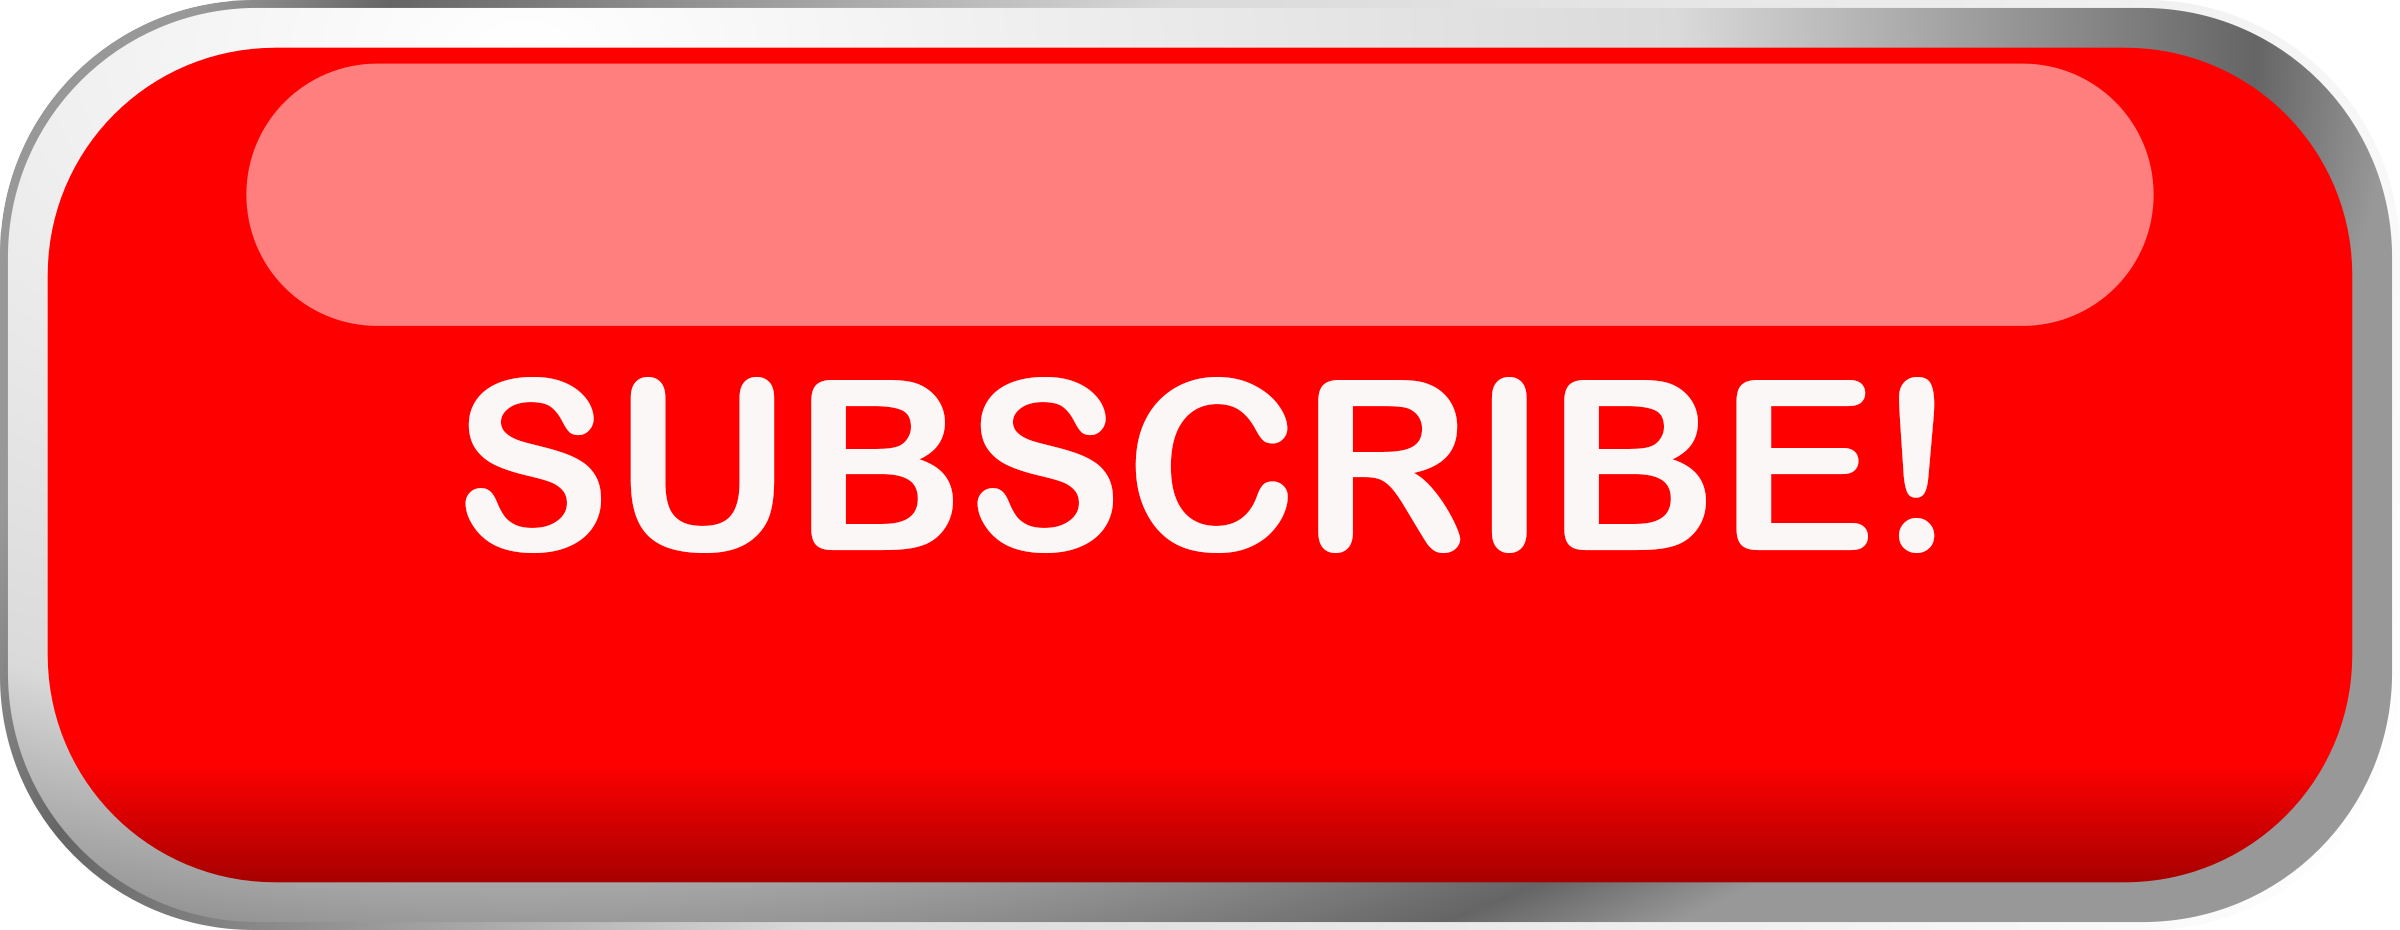 Subscribe Png.